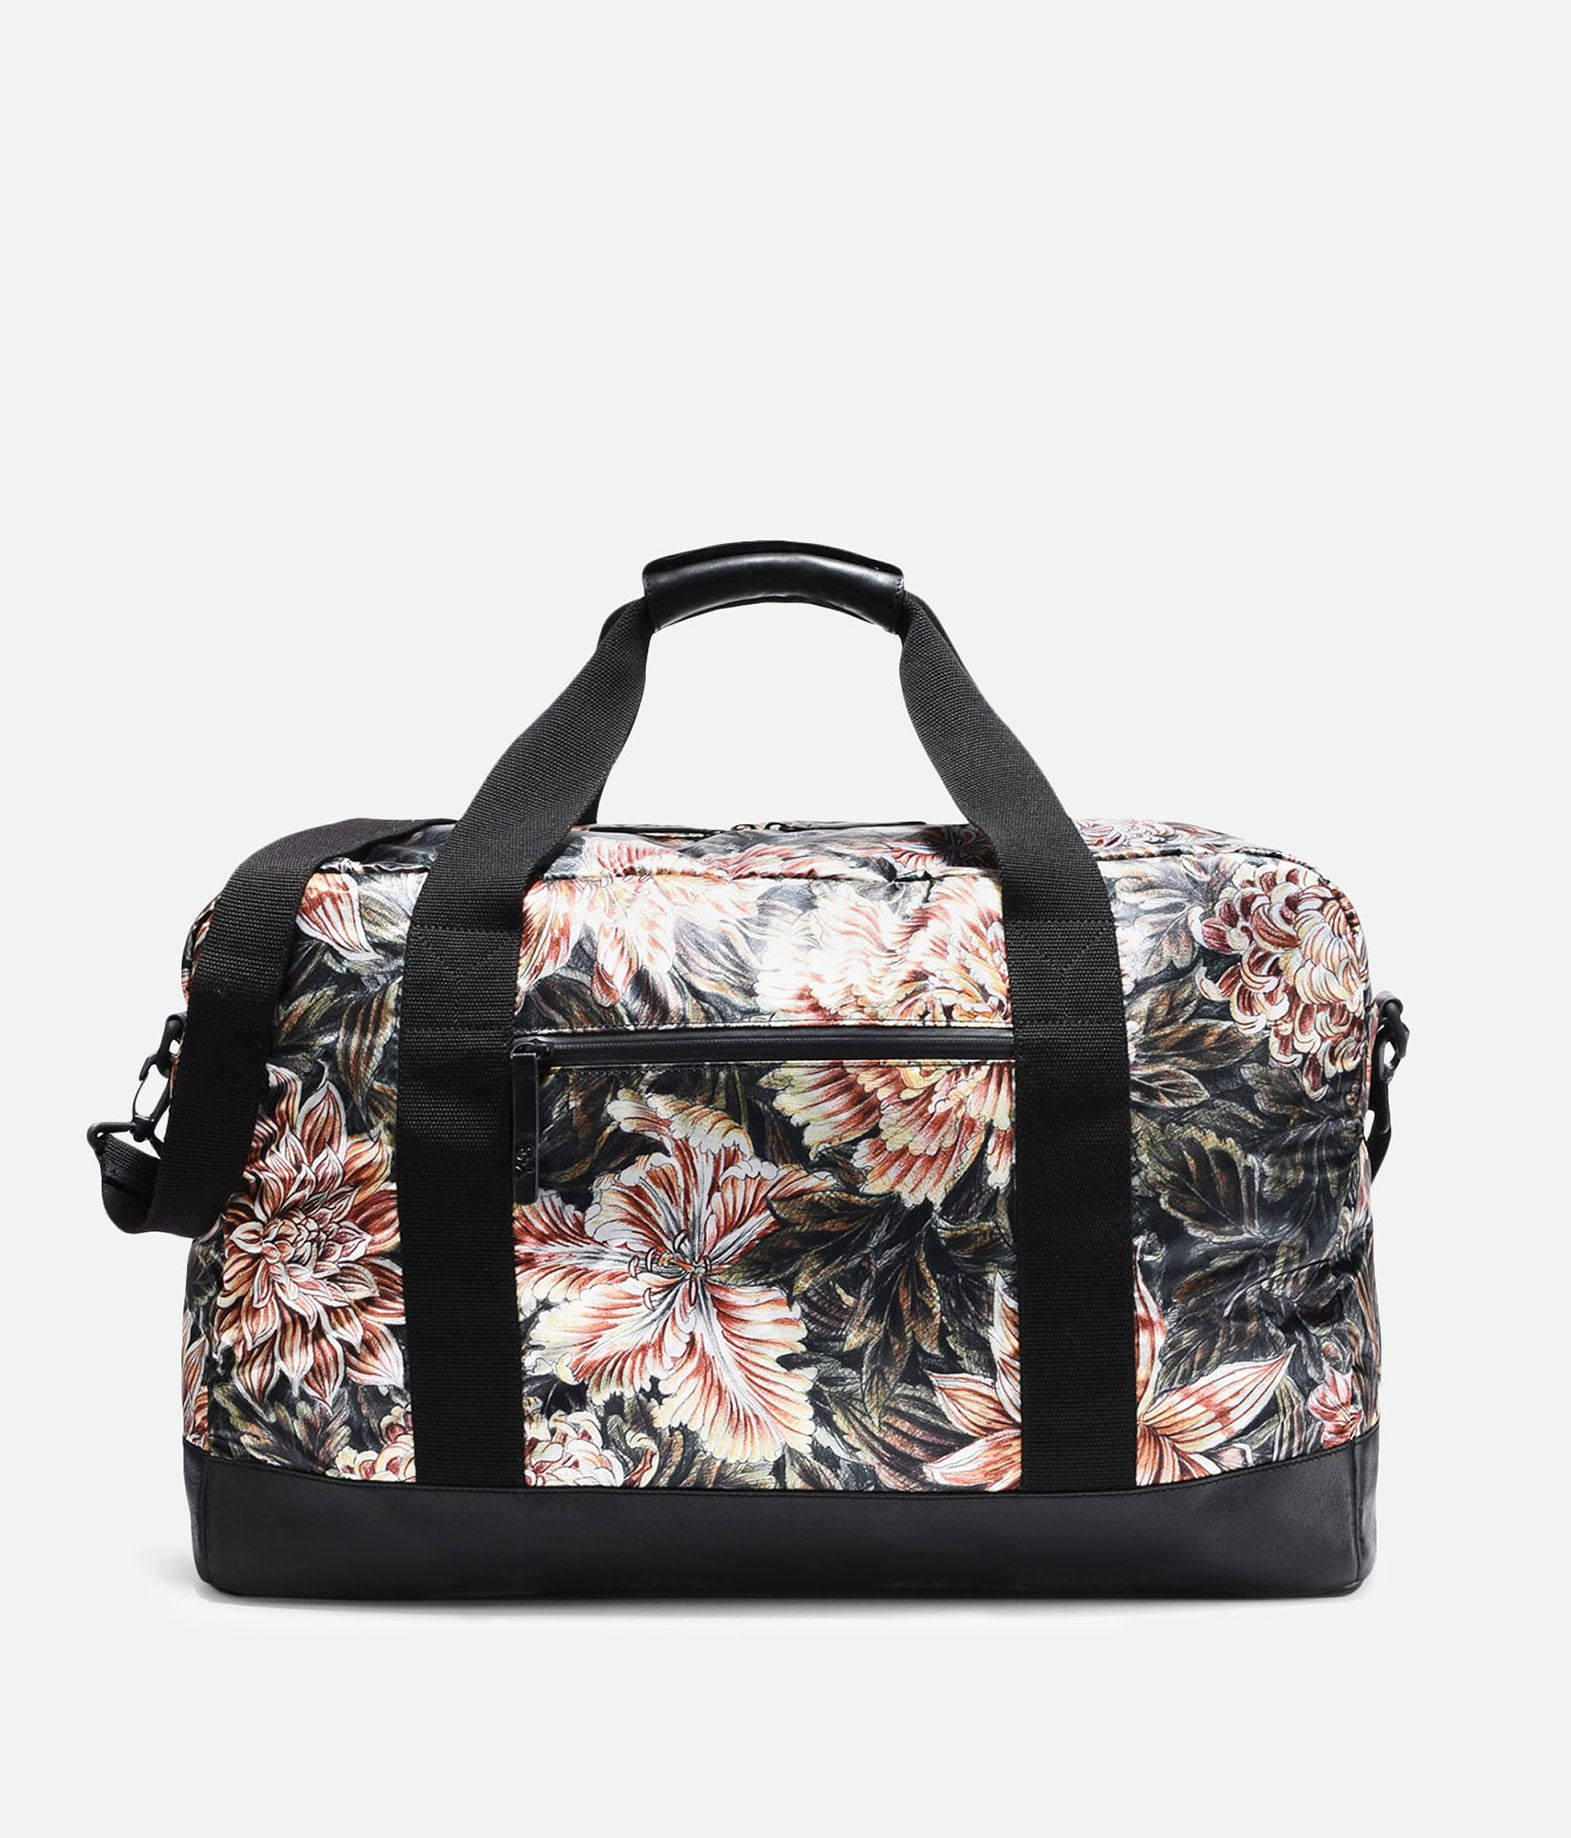 Y-3 Y-3 AOP Weekender Bag Travel bags E f